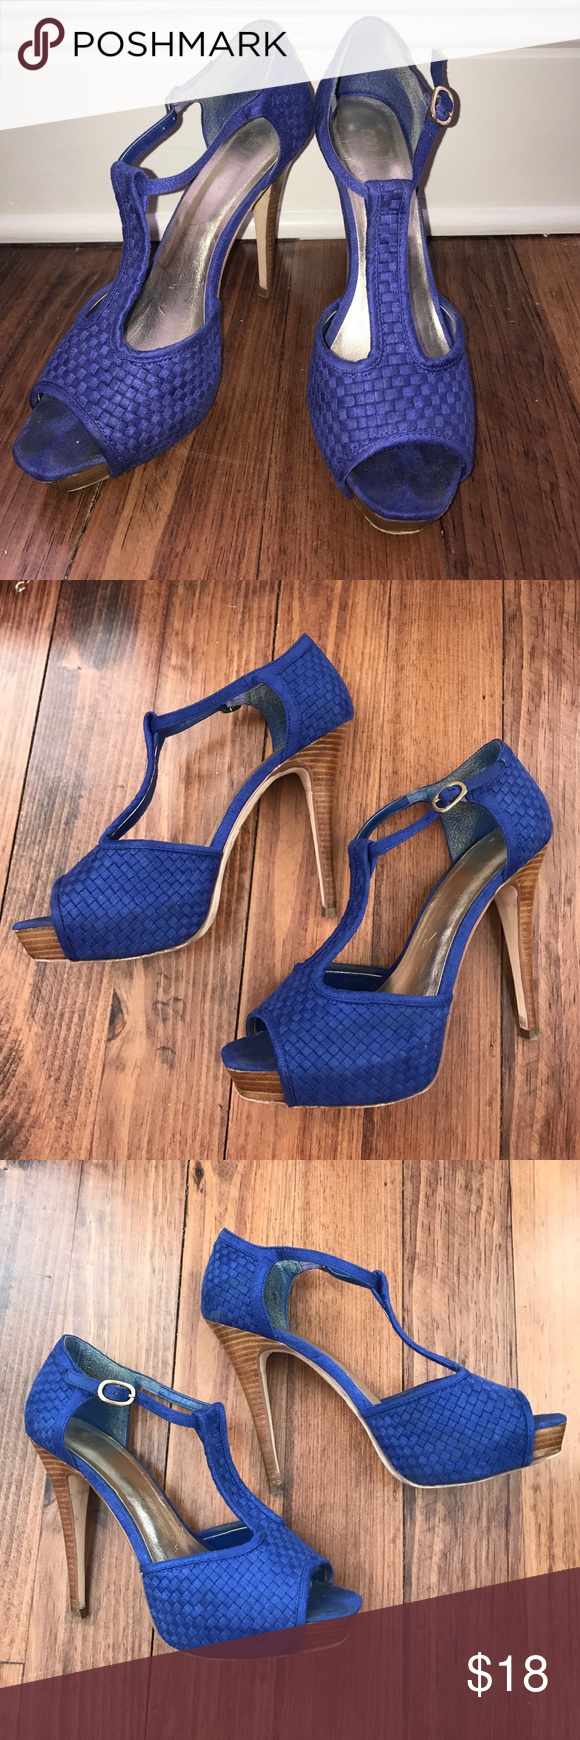 Bakers T-strap Heels. Size 8.5 Bakers Blue Suede Leather t-strap heels. Size 8.5 Bakers Shoes Heels